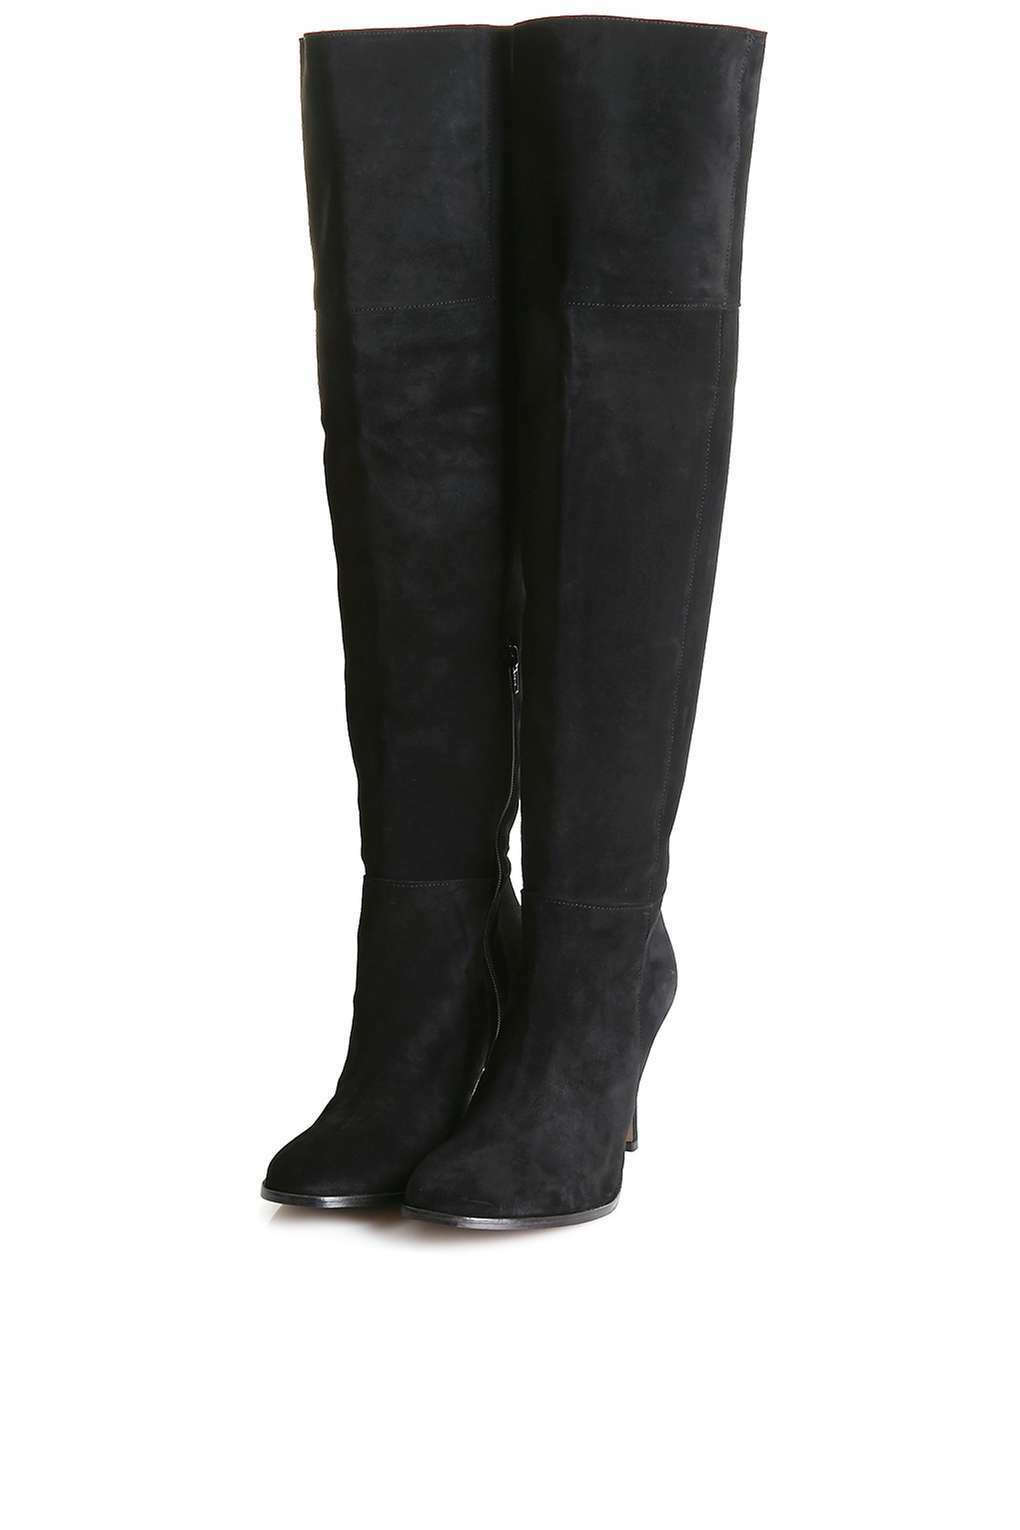 New TOPSHOP 'bubble' over the knee real suede boots eu 36  sale